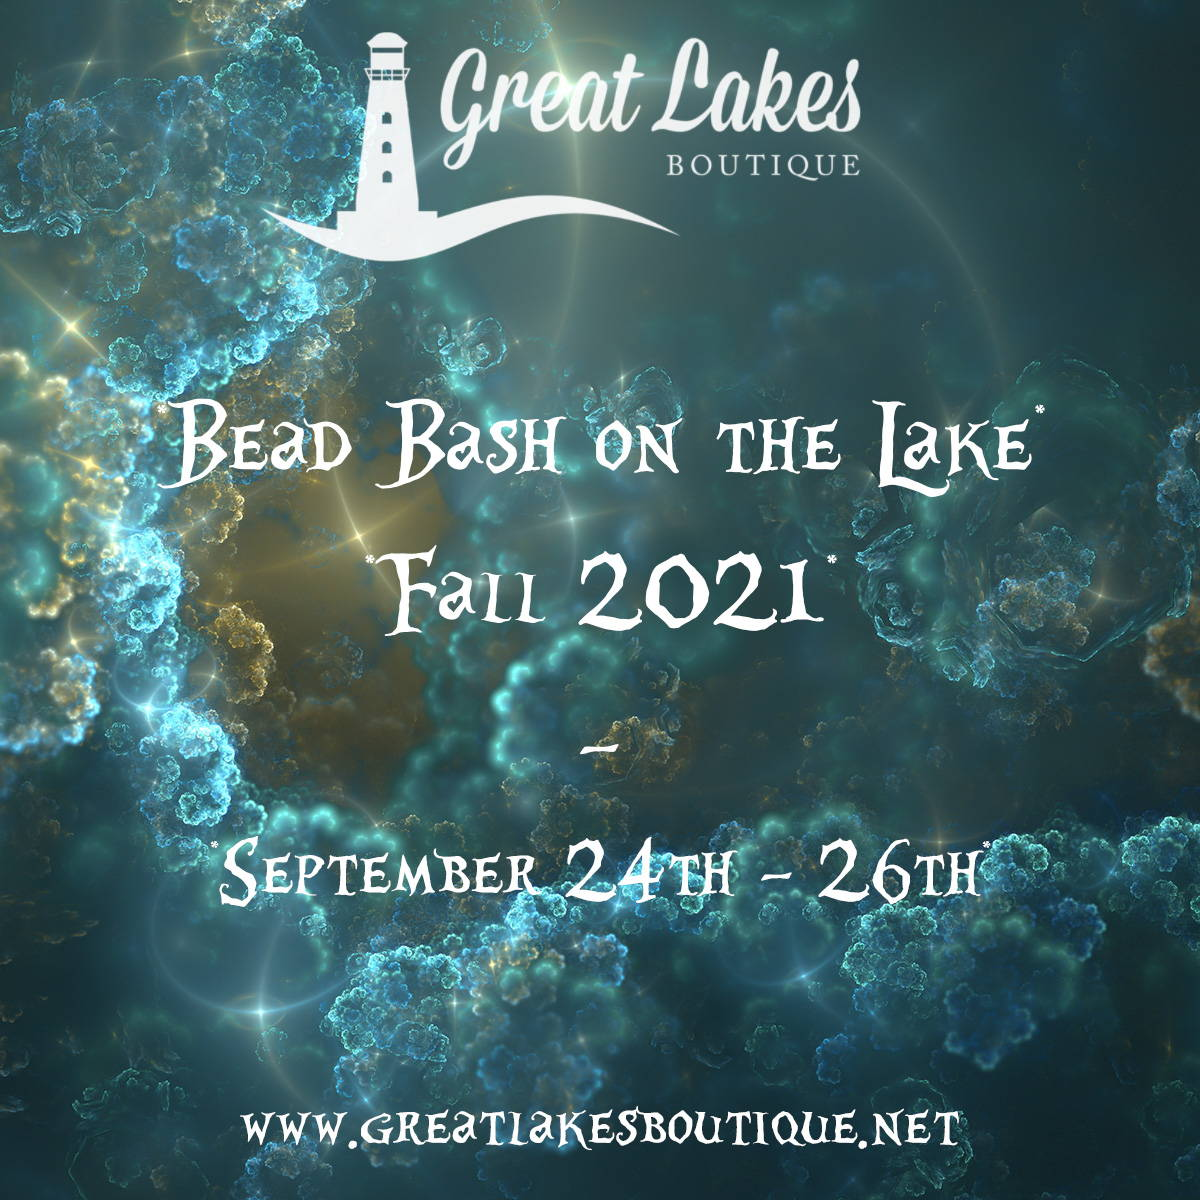 Great Lakes Boutique Bead Bash on the Lake Fall 2021